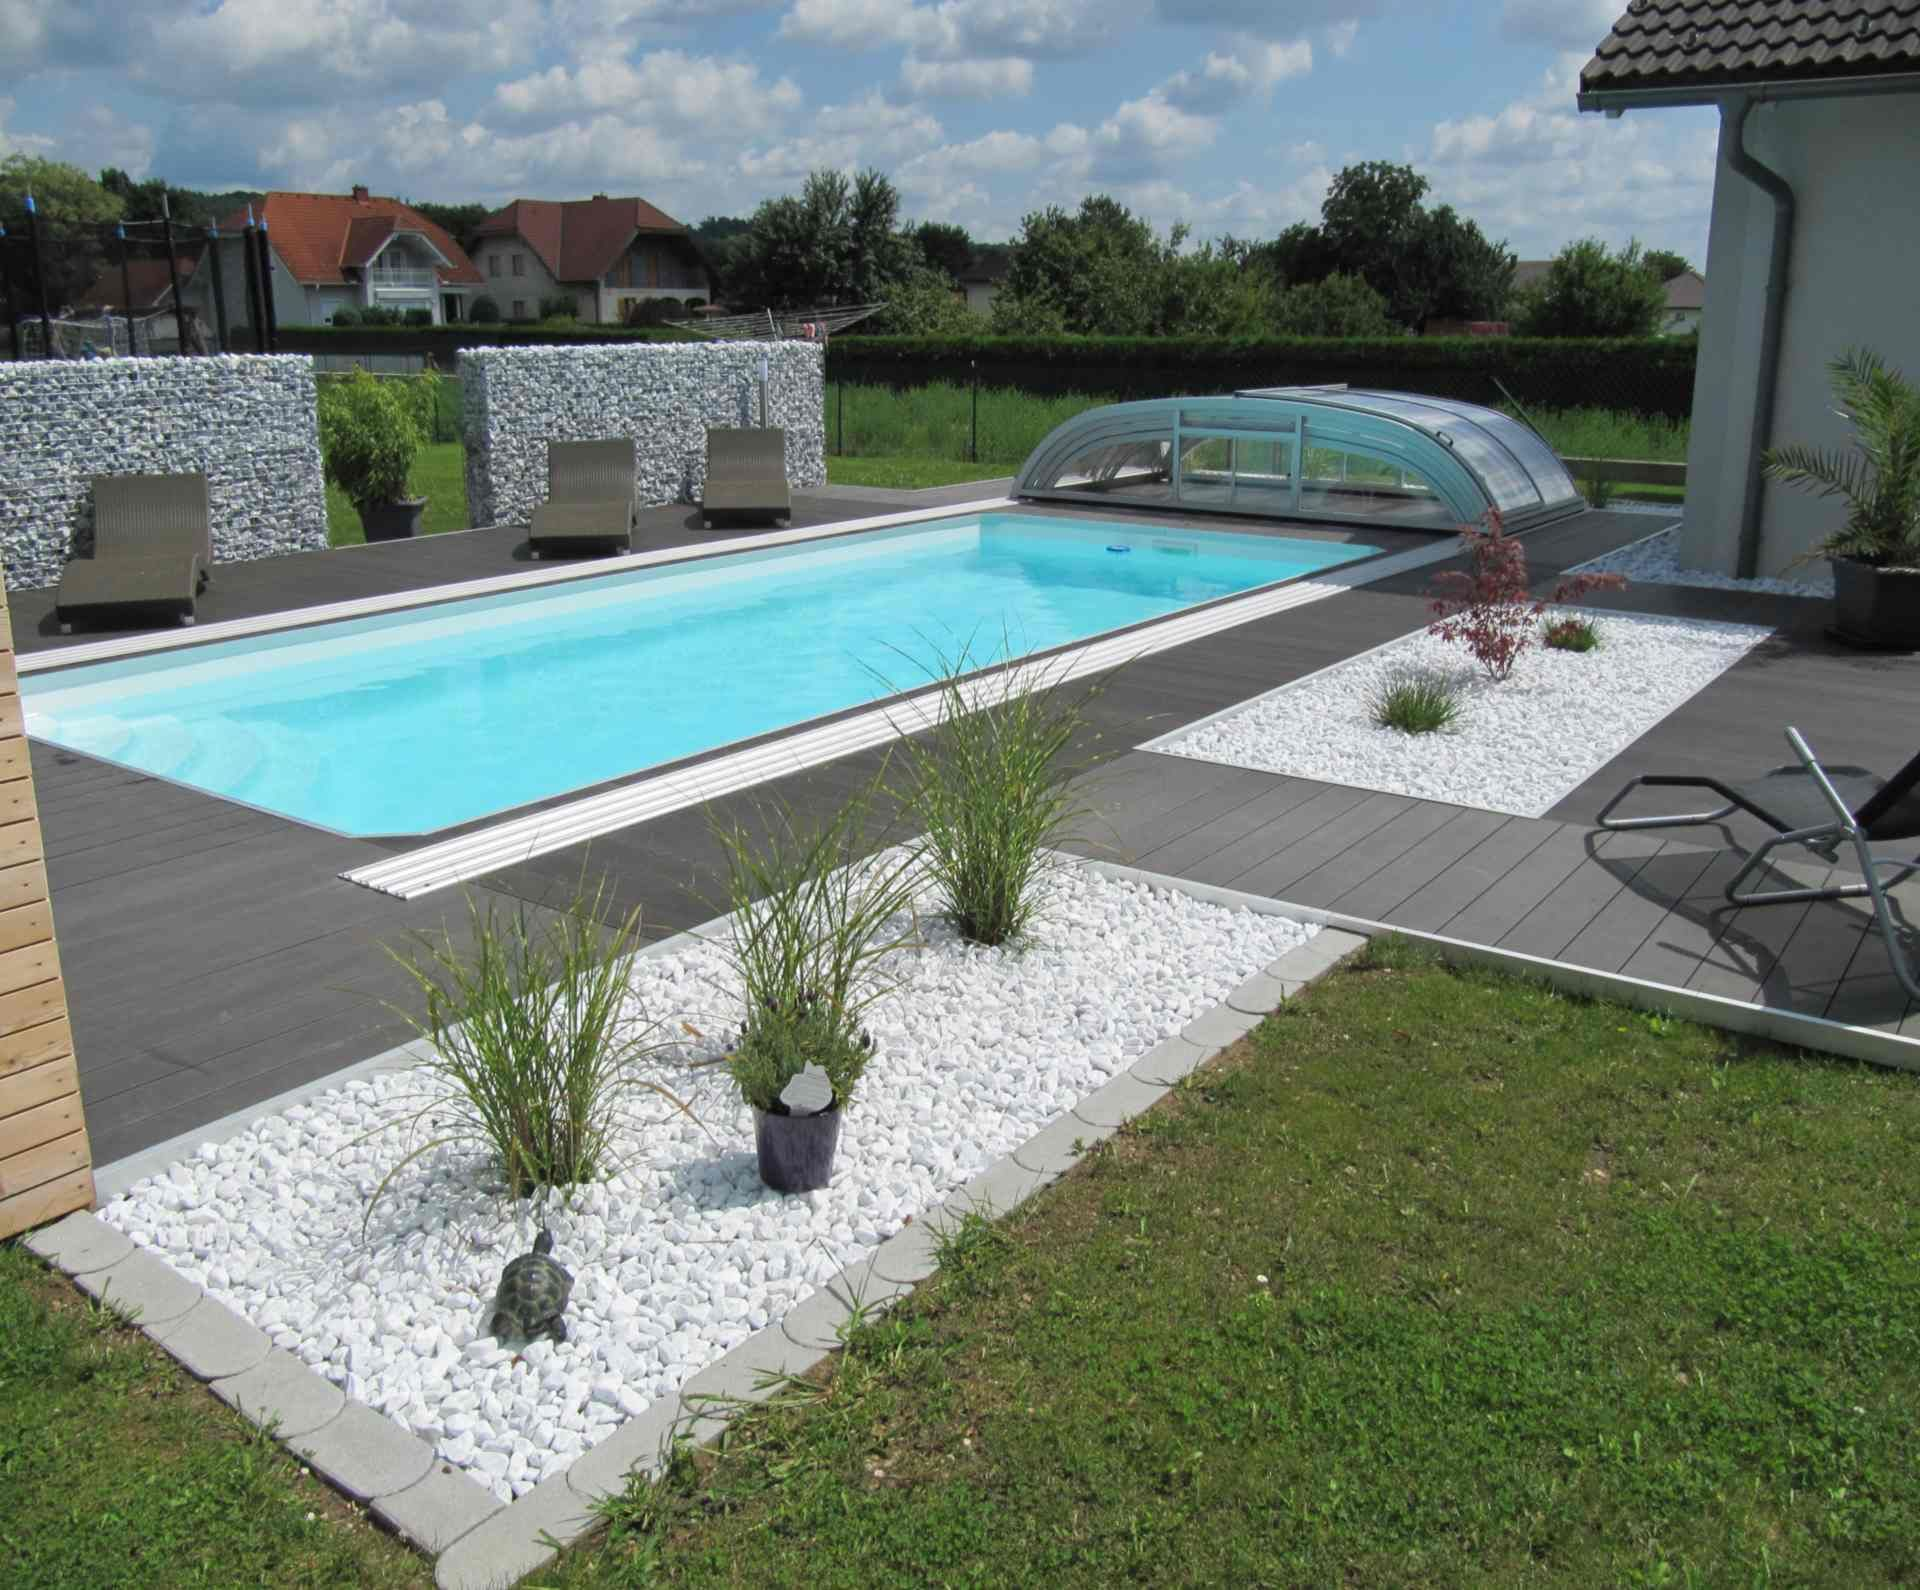 Level deck swimming pool Poolterrasse, Terrassendielen